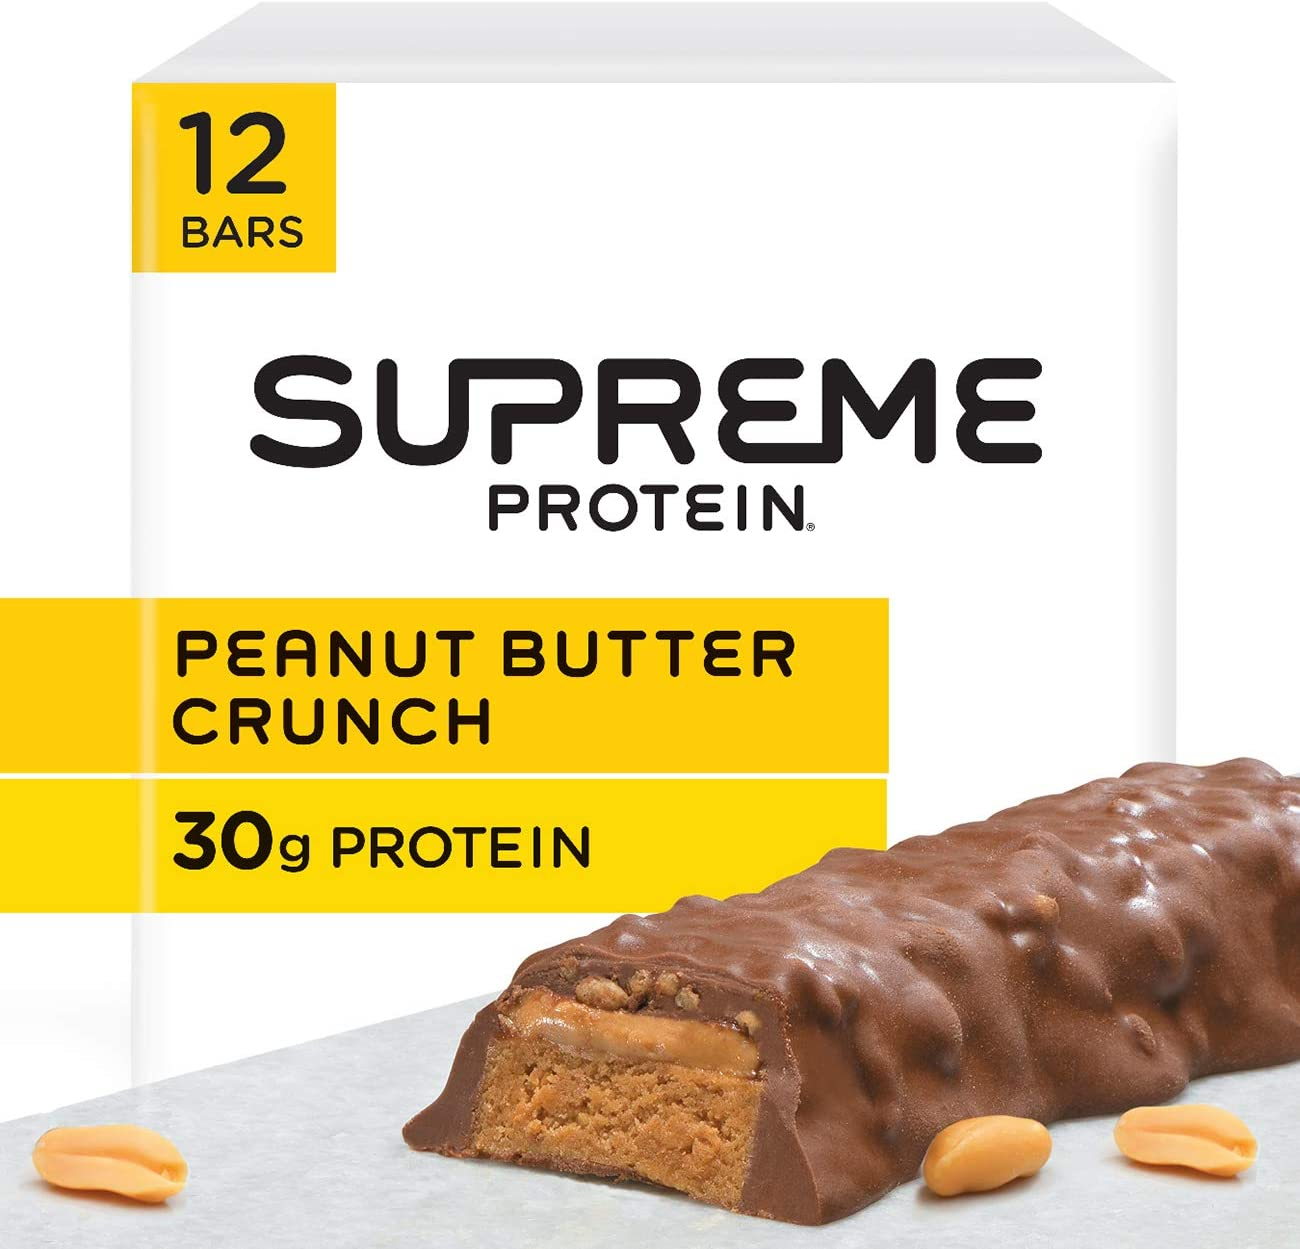 Supreme Protein 30g Protein Bar, Peanut Butter Crunch, 3 Ounce Bars, 12 Count